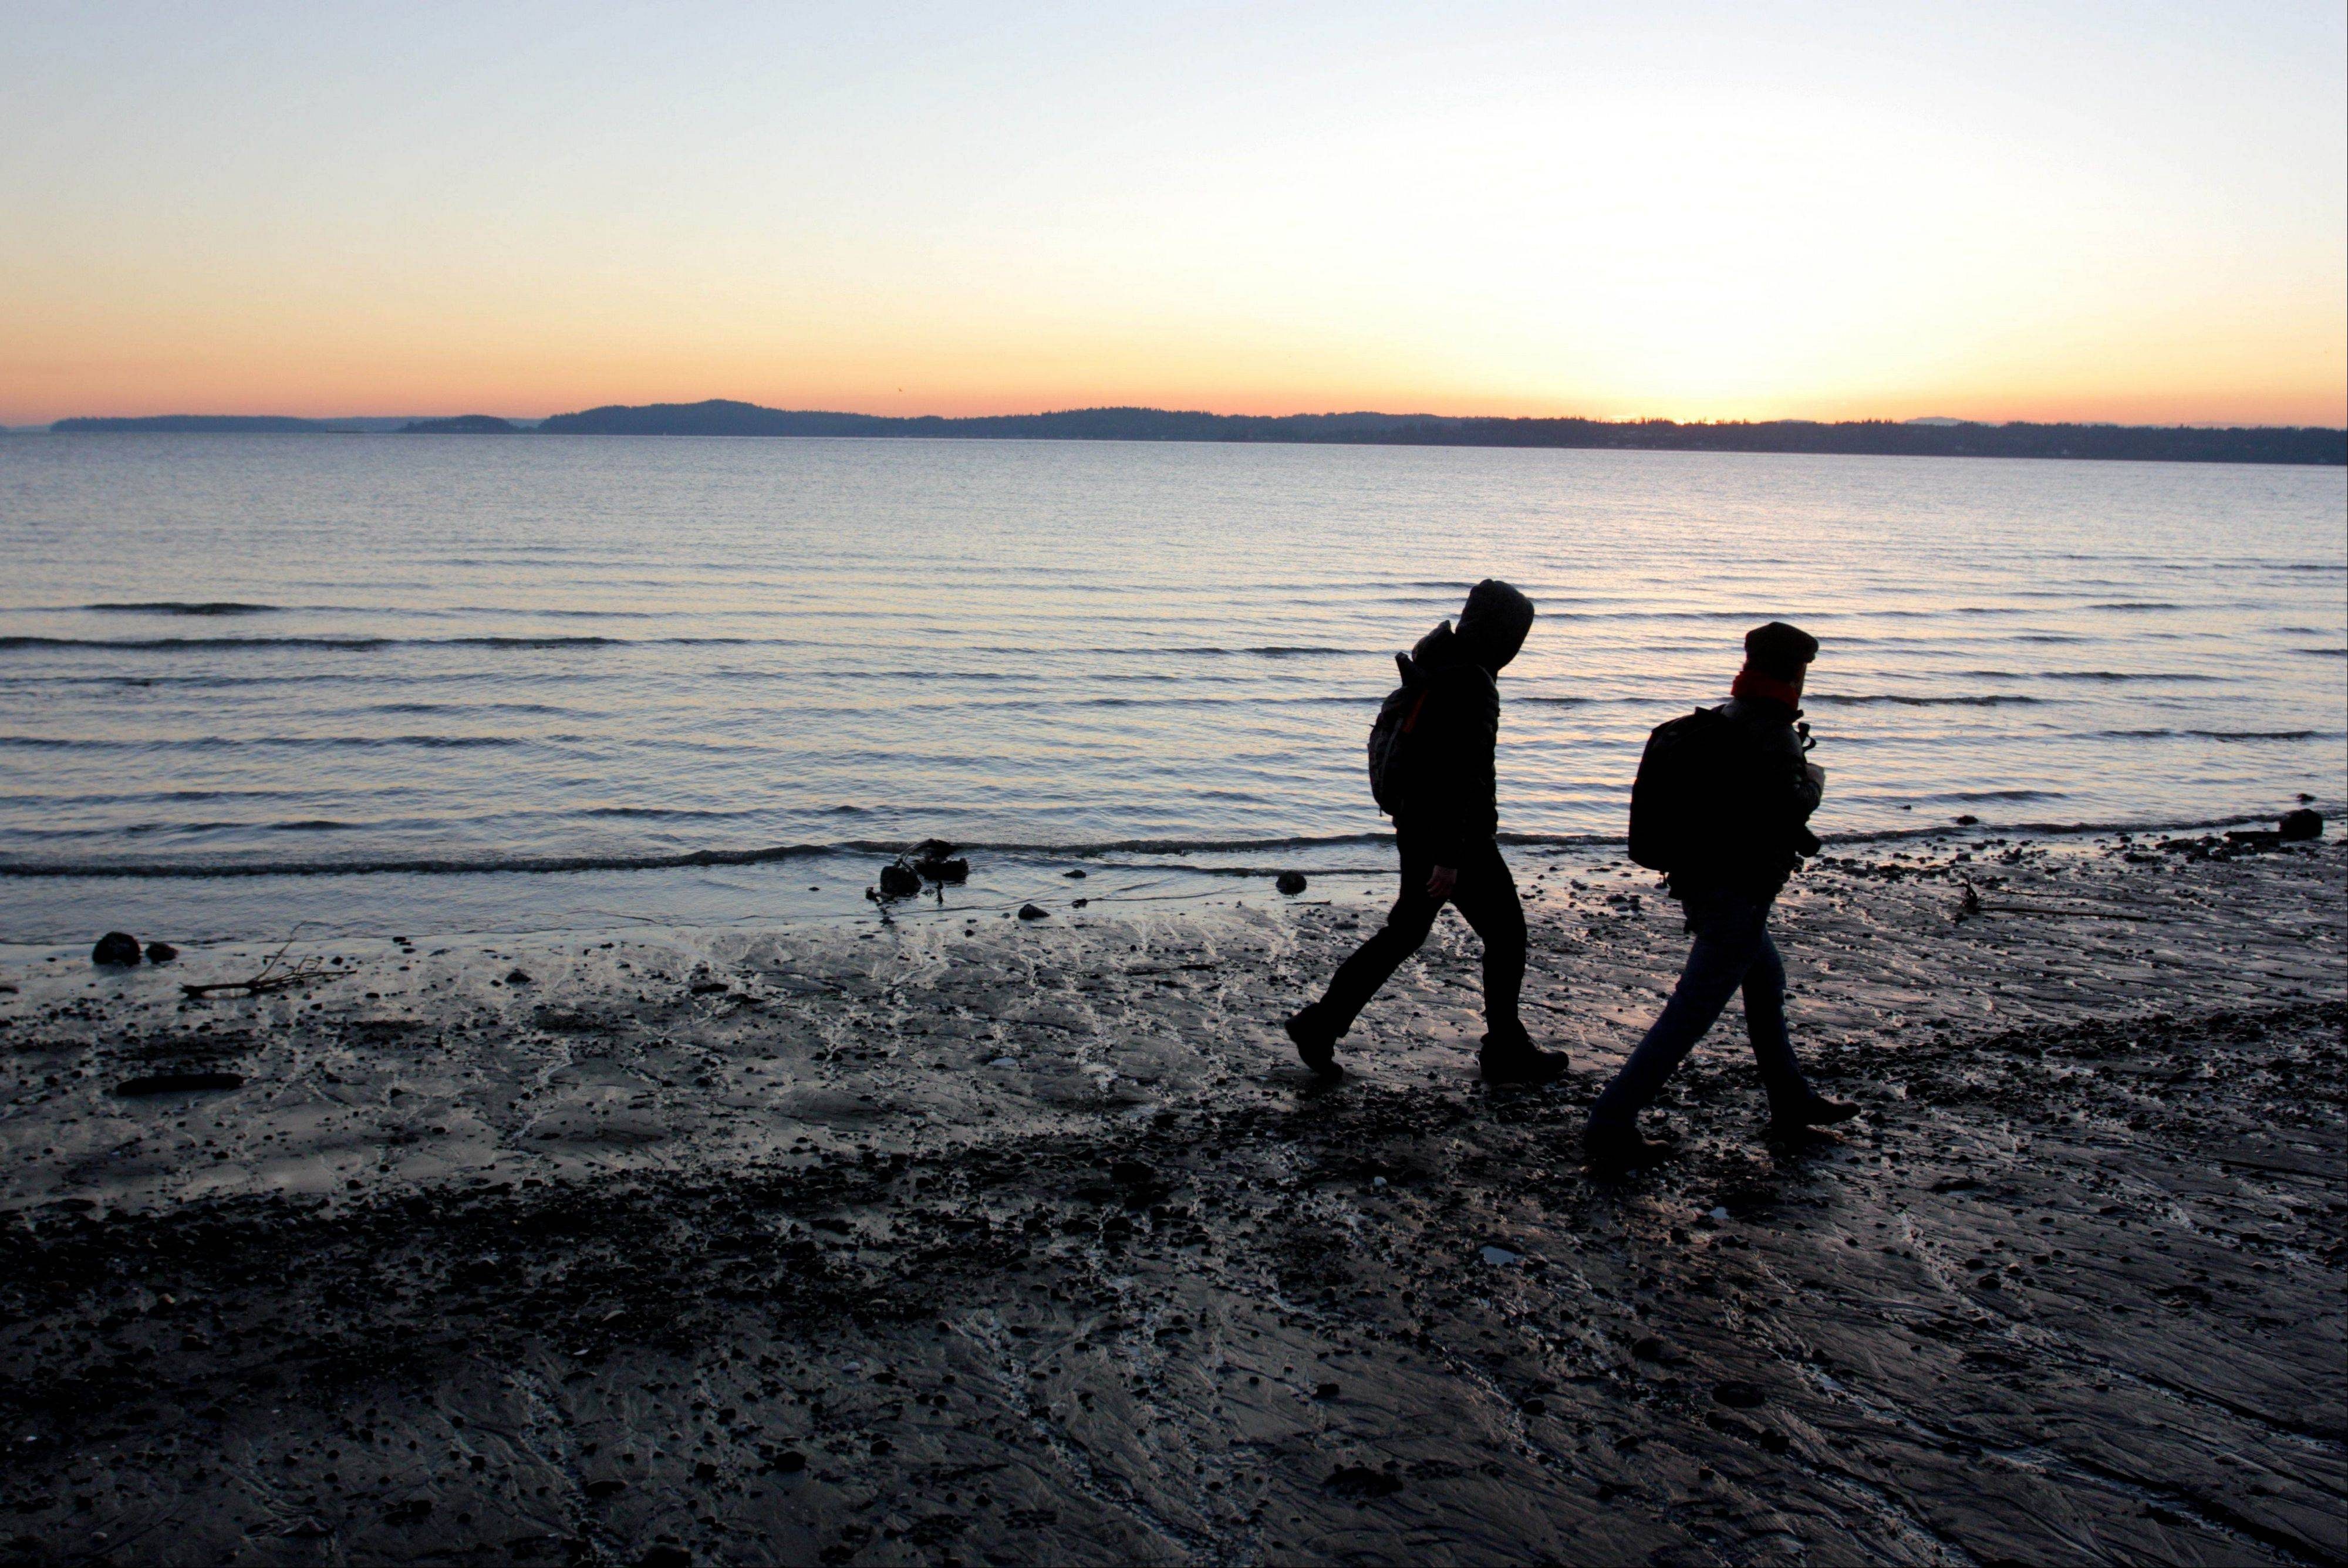 Two people walk the beach at Discovery Park in Seattle. At 534 acres, the park is the largest park in the city and features seaside bluffs, views of the Puget Sound, trails, a lighthouse and a beach.